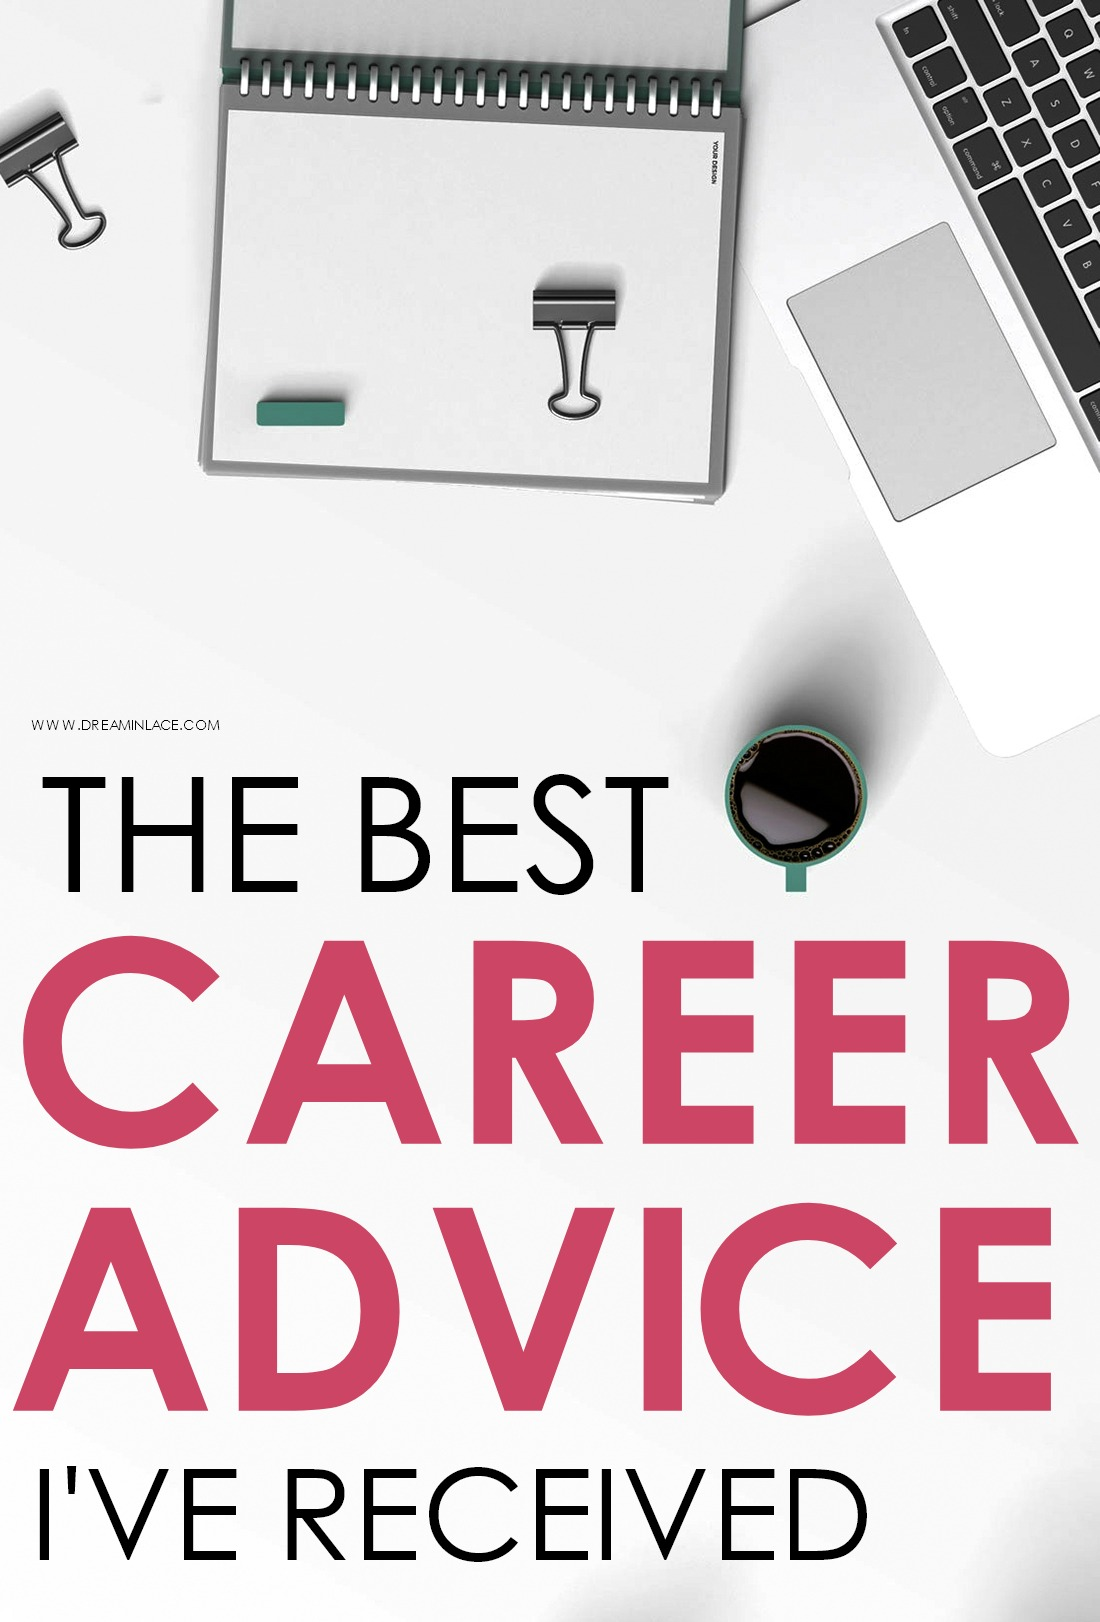 The Best Career Advice I've Ever Received I DreaminLace.com #motivation